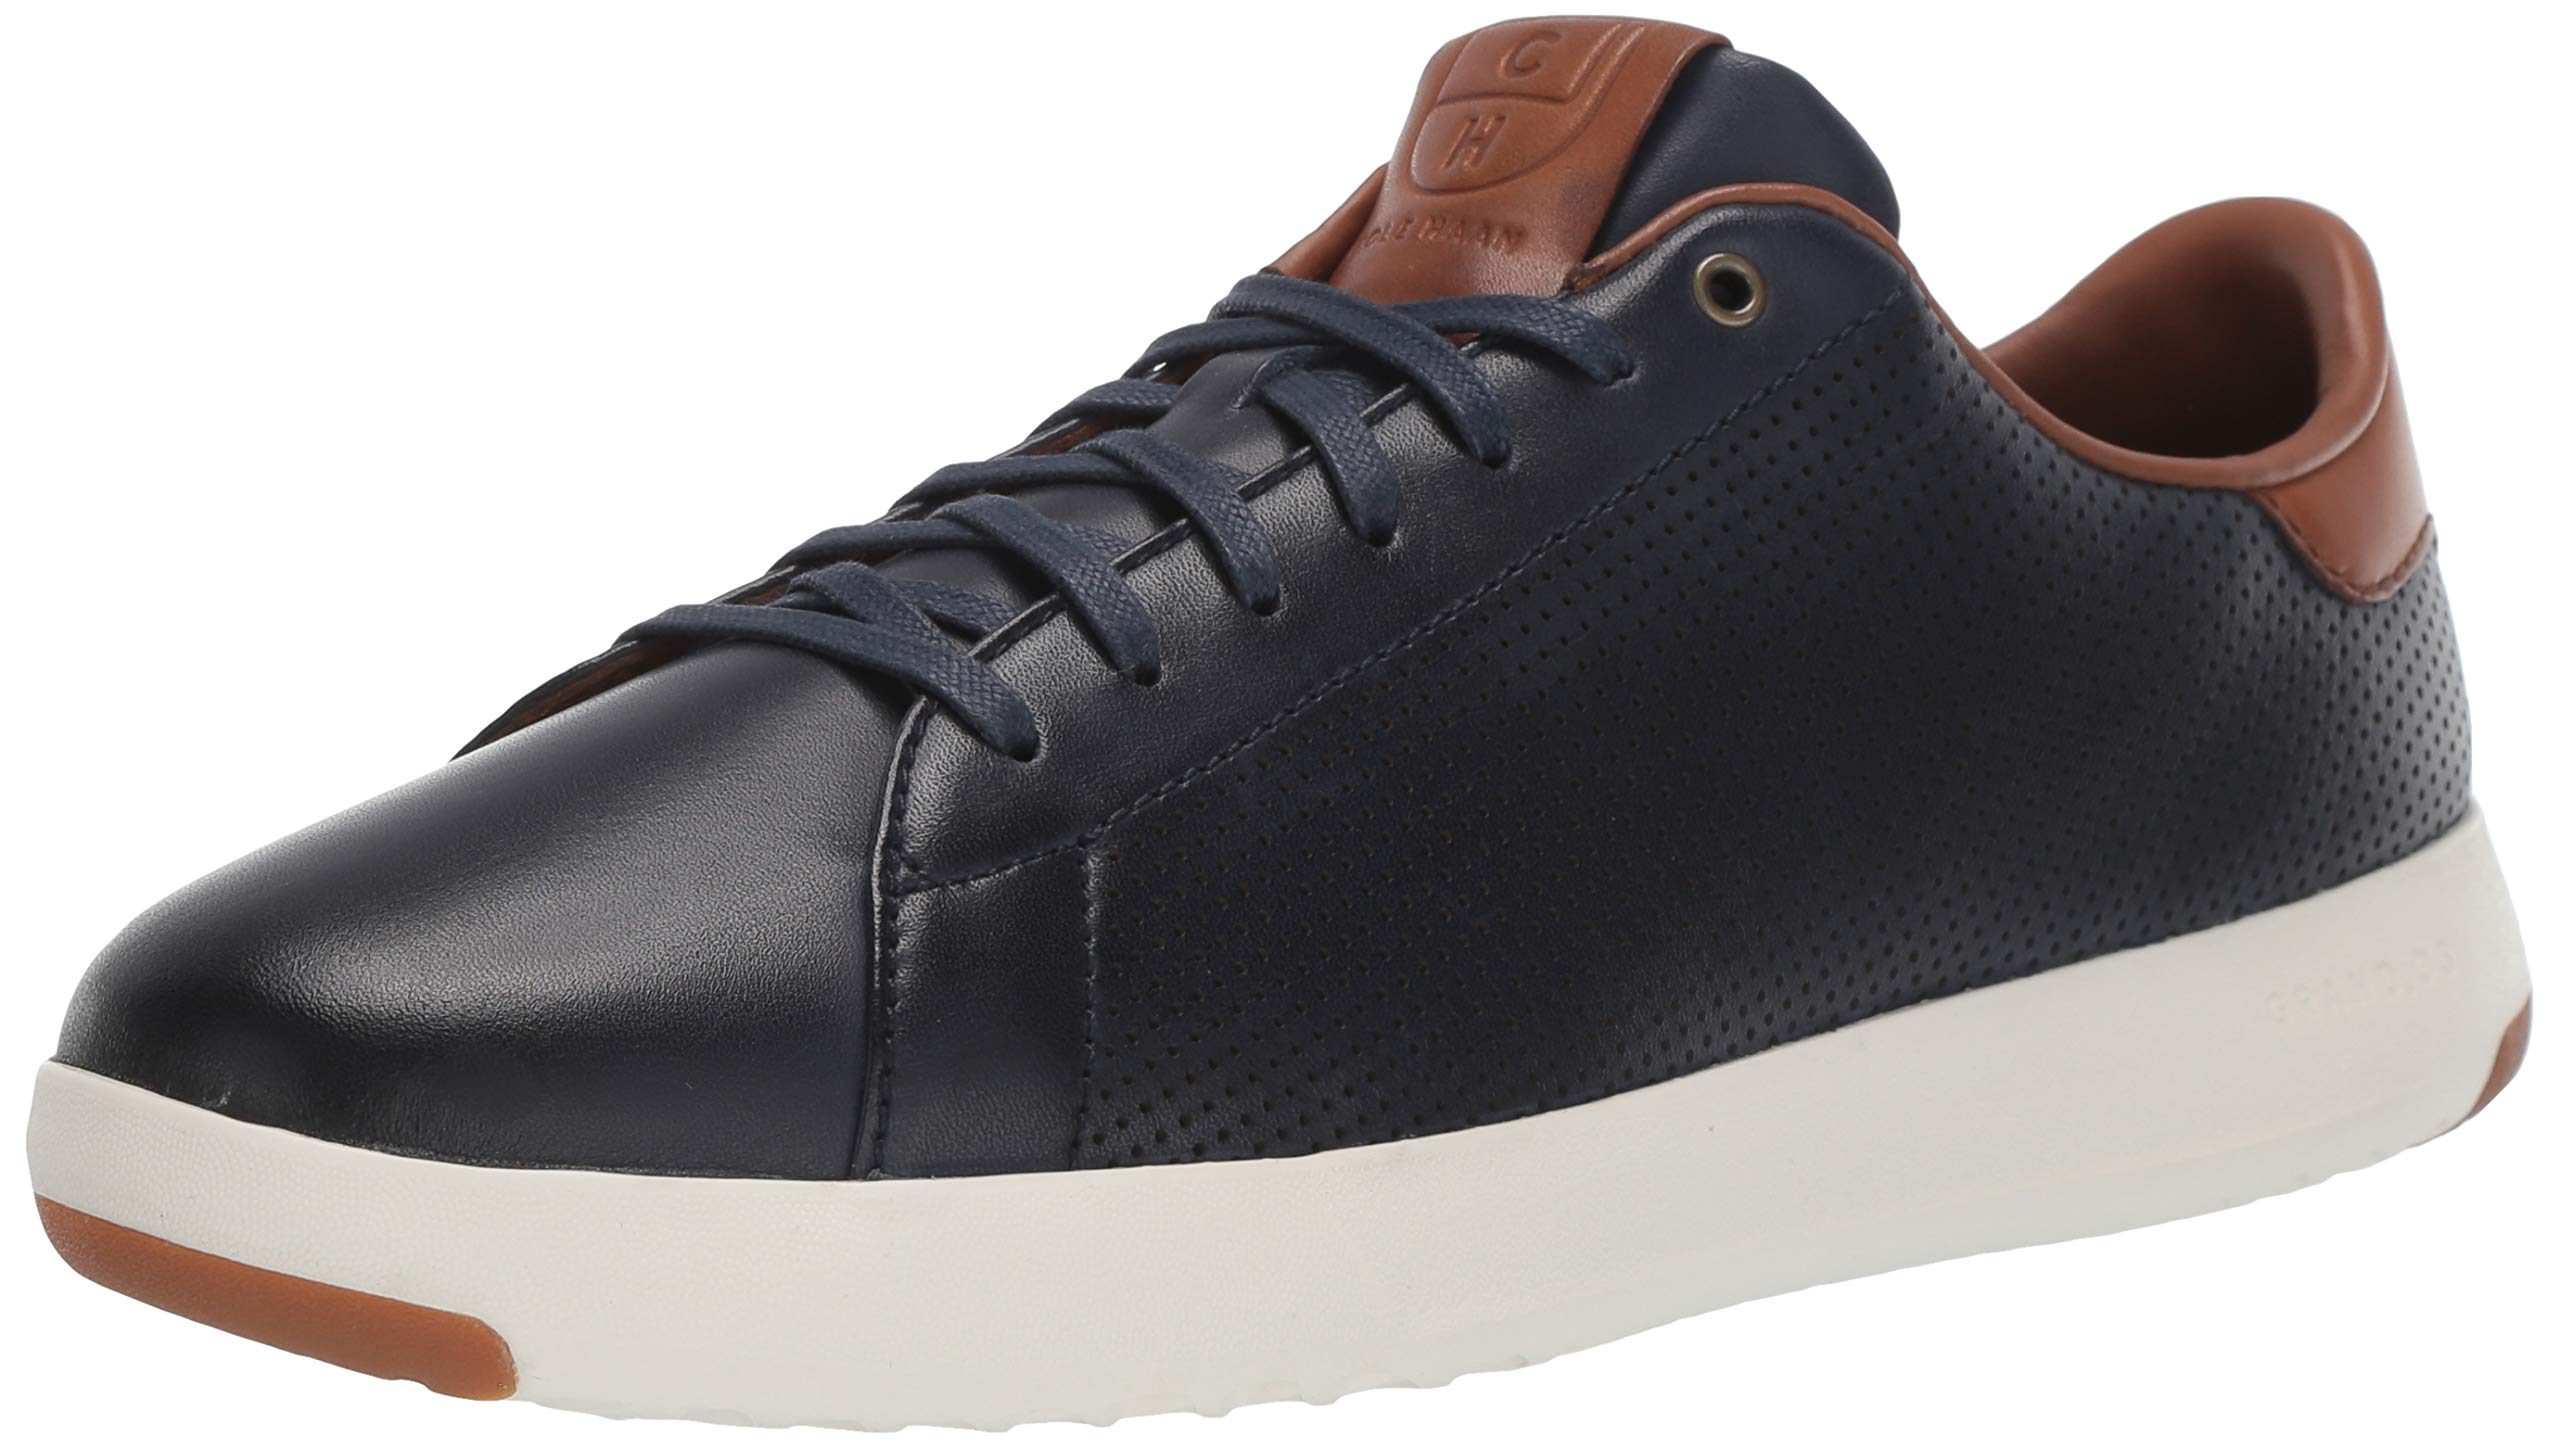 Cole Haan Mens Grandpro Tennis Sneaker 7 Navy Handstained Leather